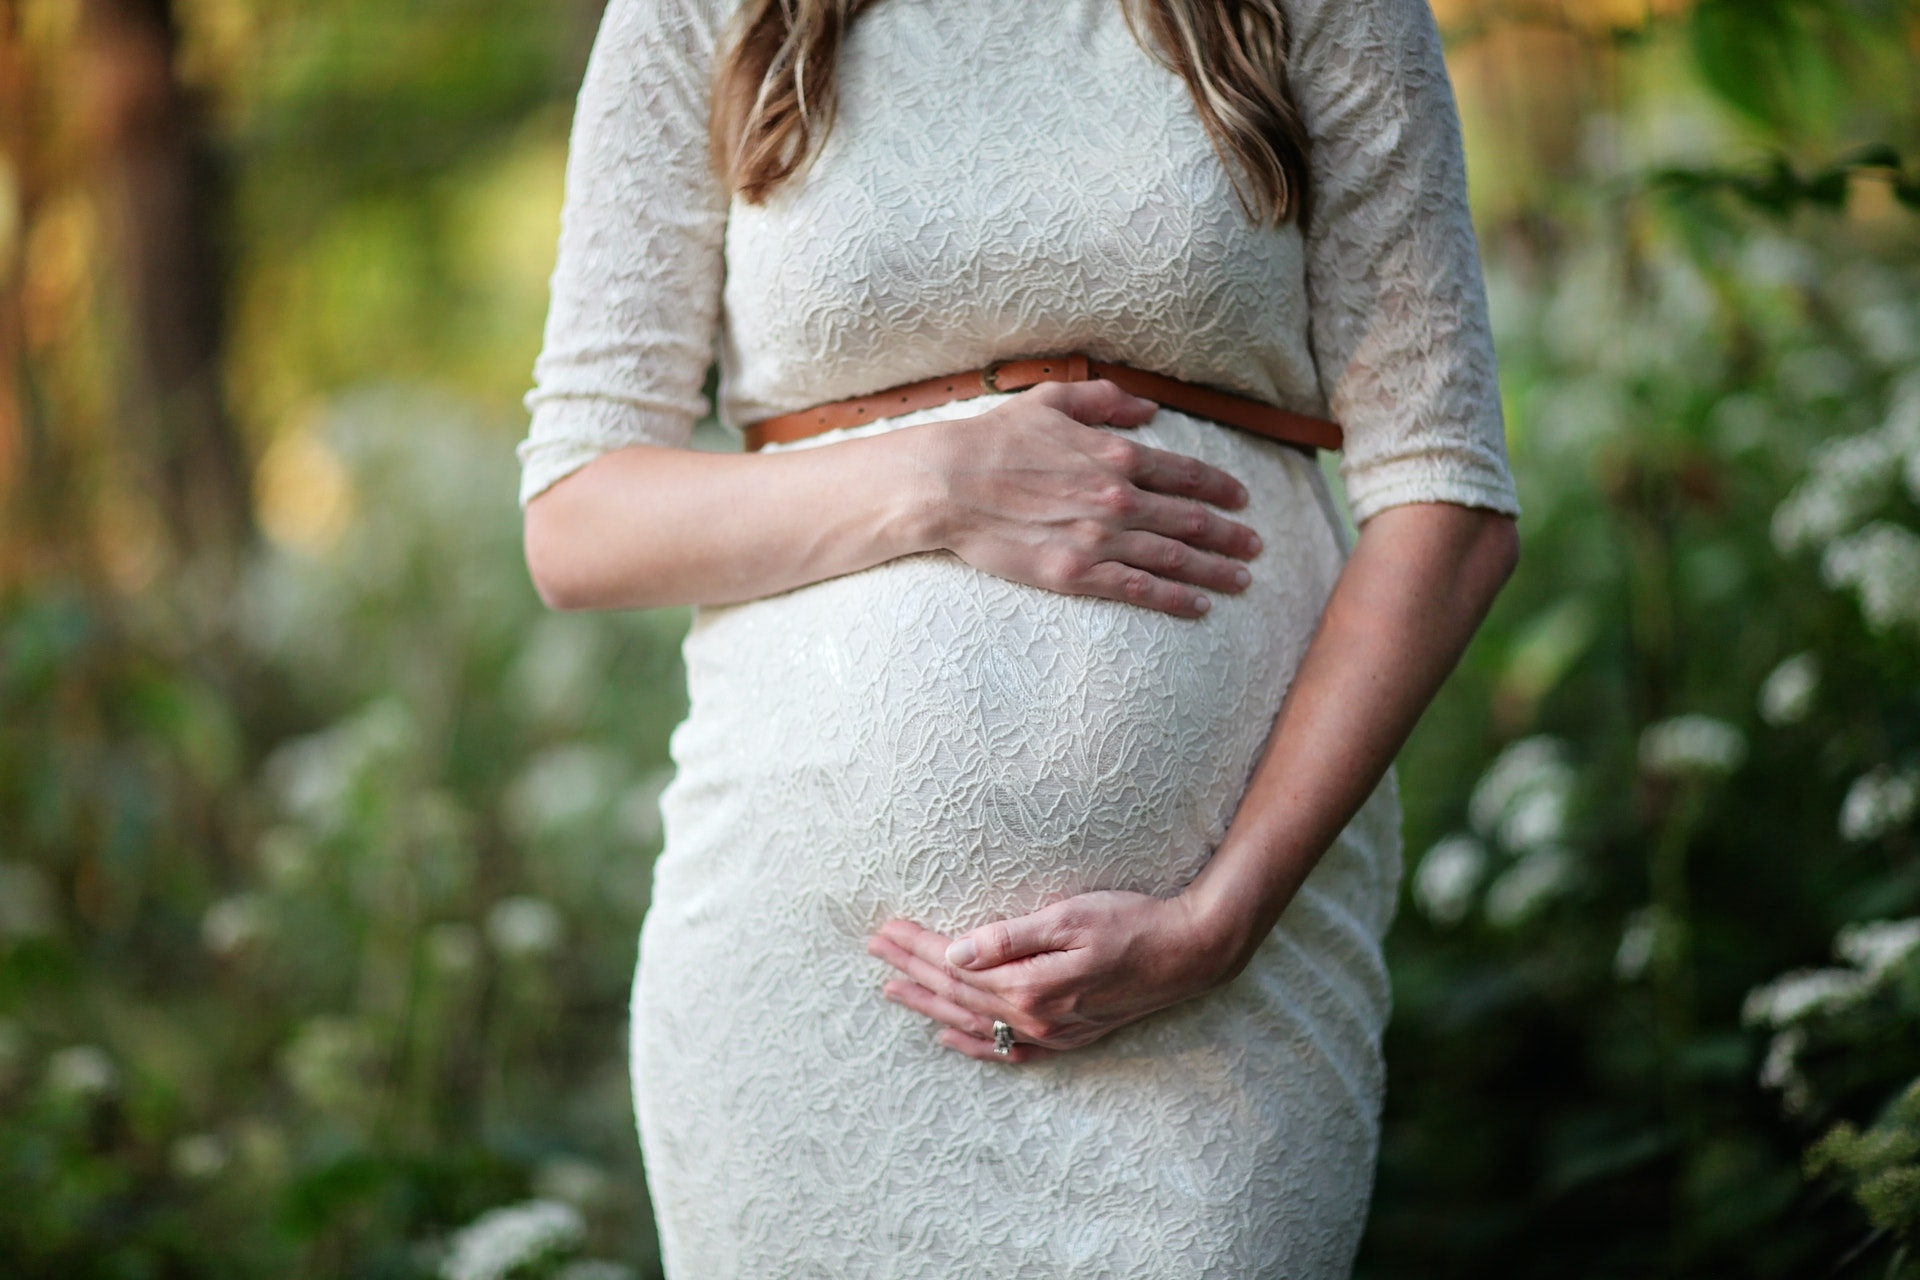 A pregnant woman holding her belly wondering if dentures are right for her or not